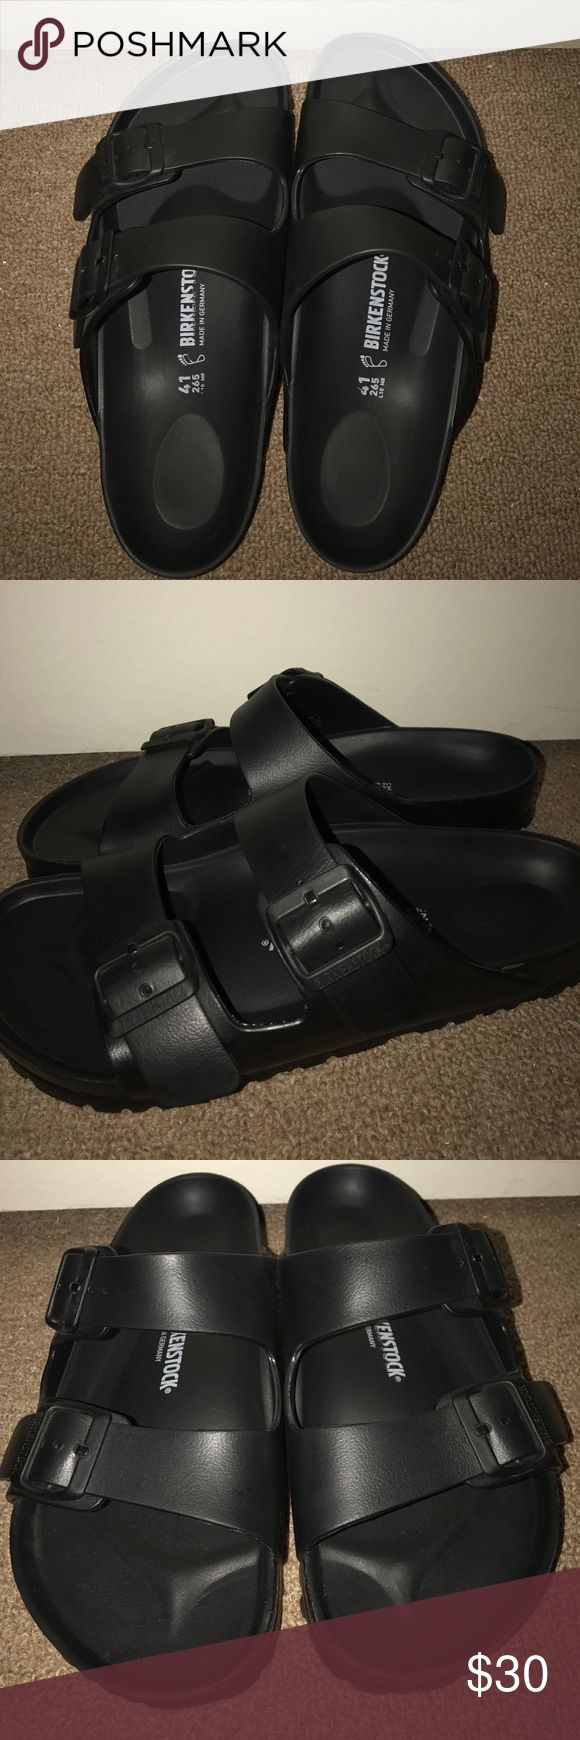 Matte Black Birkenstocks Matte black birkenstock sandals, size 41 euro aka size 8MENS and size 10WOMENS with Adjustable straps and made almost completely out of EVA,(ethylene vinyl acetate) a high-quality, very light, elastic material with very good cushioning. They're brand new only worn once and taken very good care of. Birkenstock Shoes Sandals